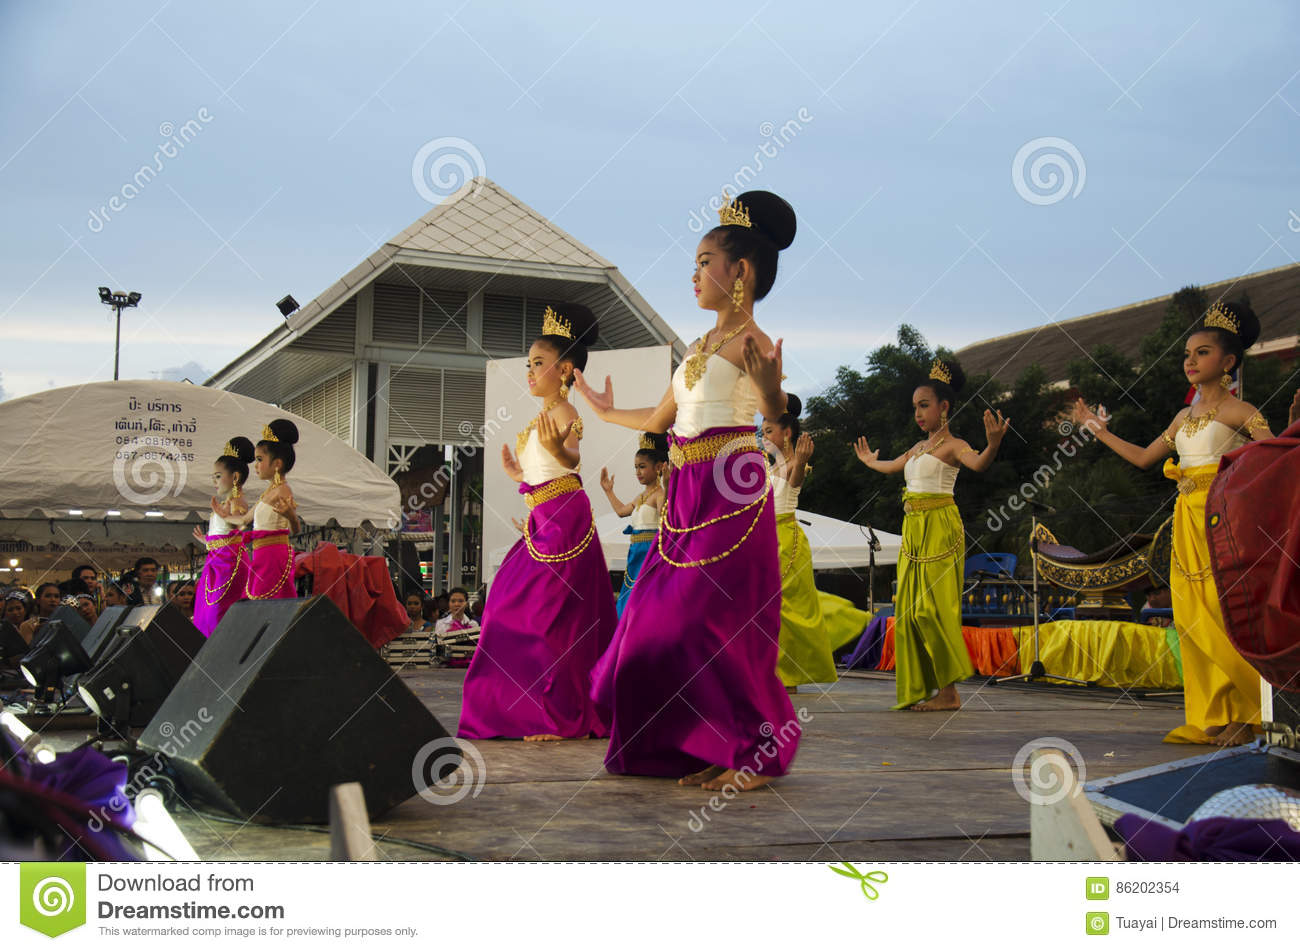 fd3dbd586 Thai women dancer dancing thai style for show people in traditional culture  thai festival